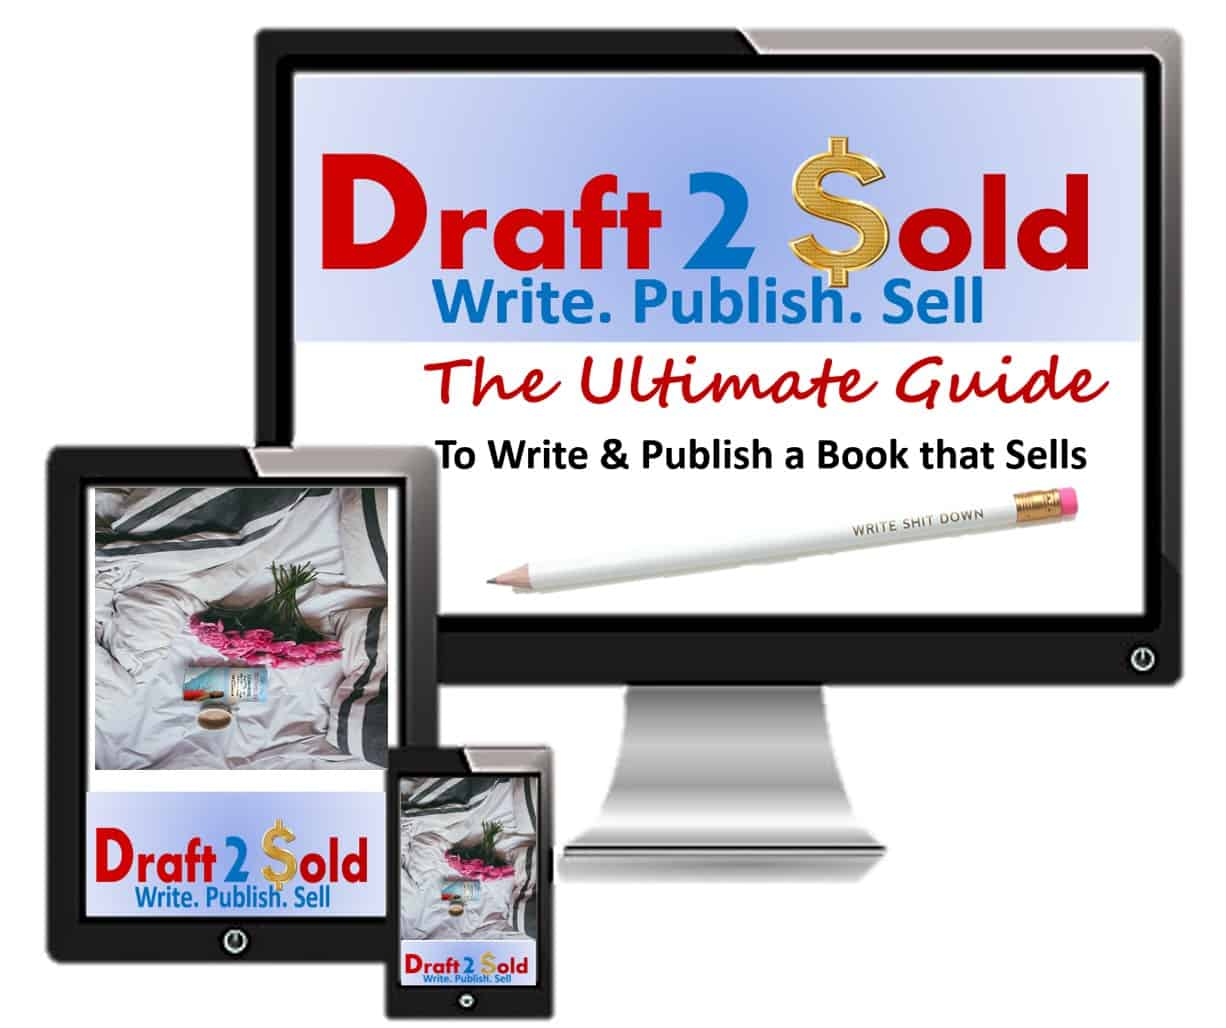 Draft 2 Sold Book Seller Code